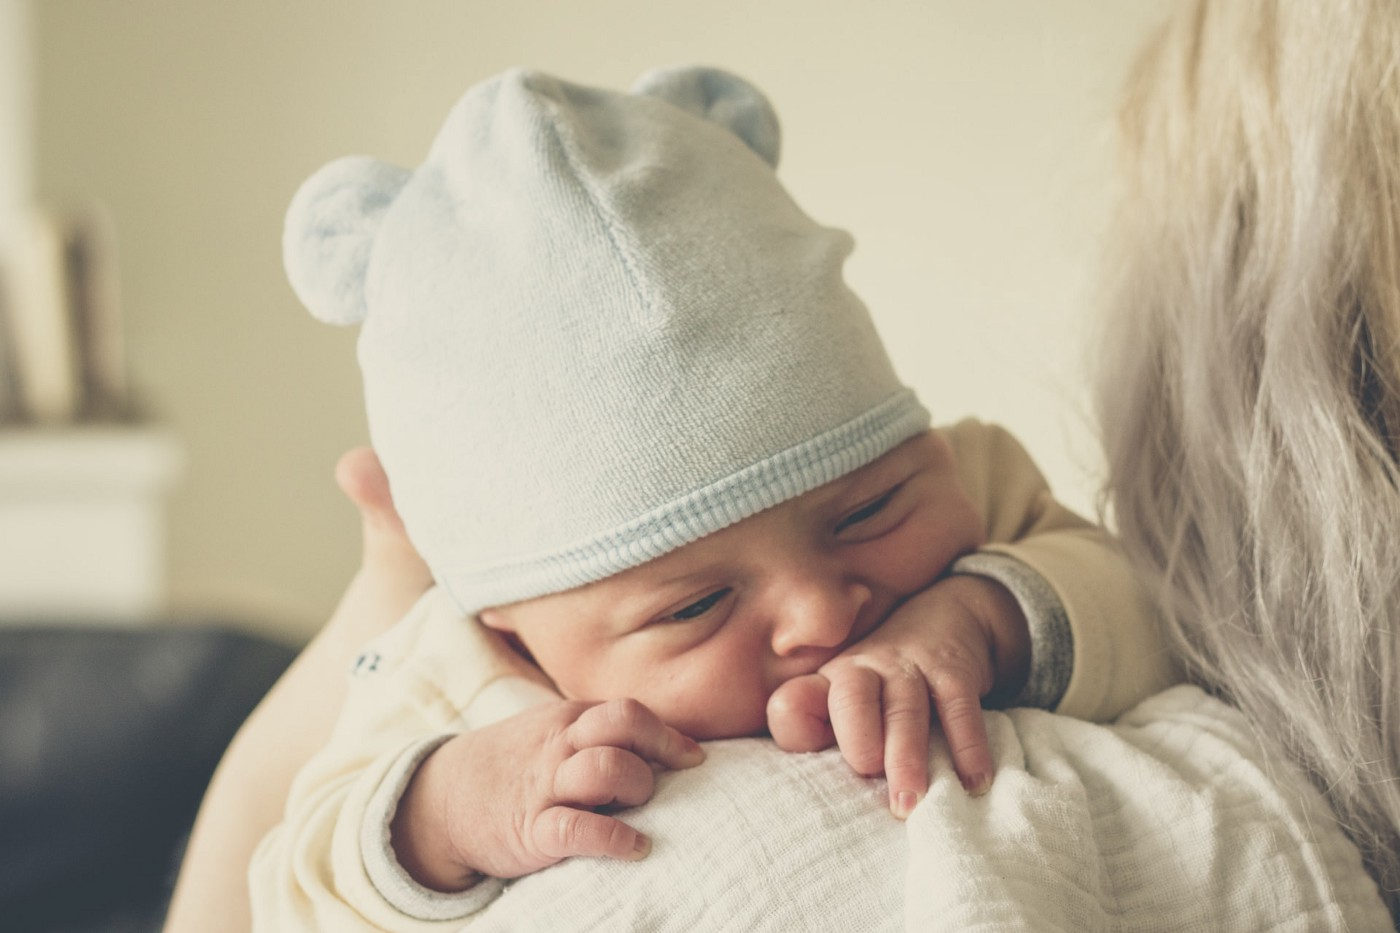 A picture showing a cute baby